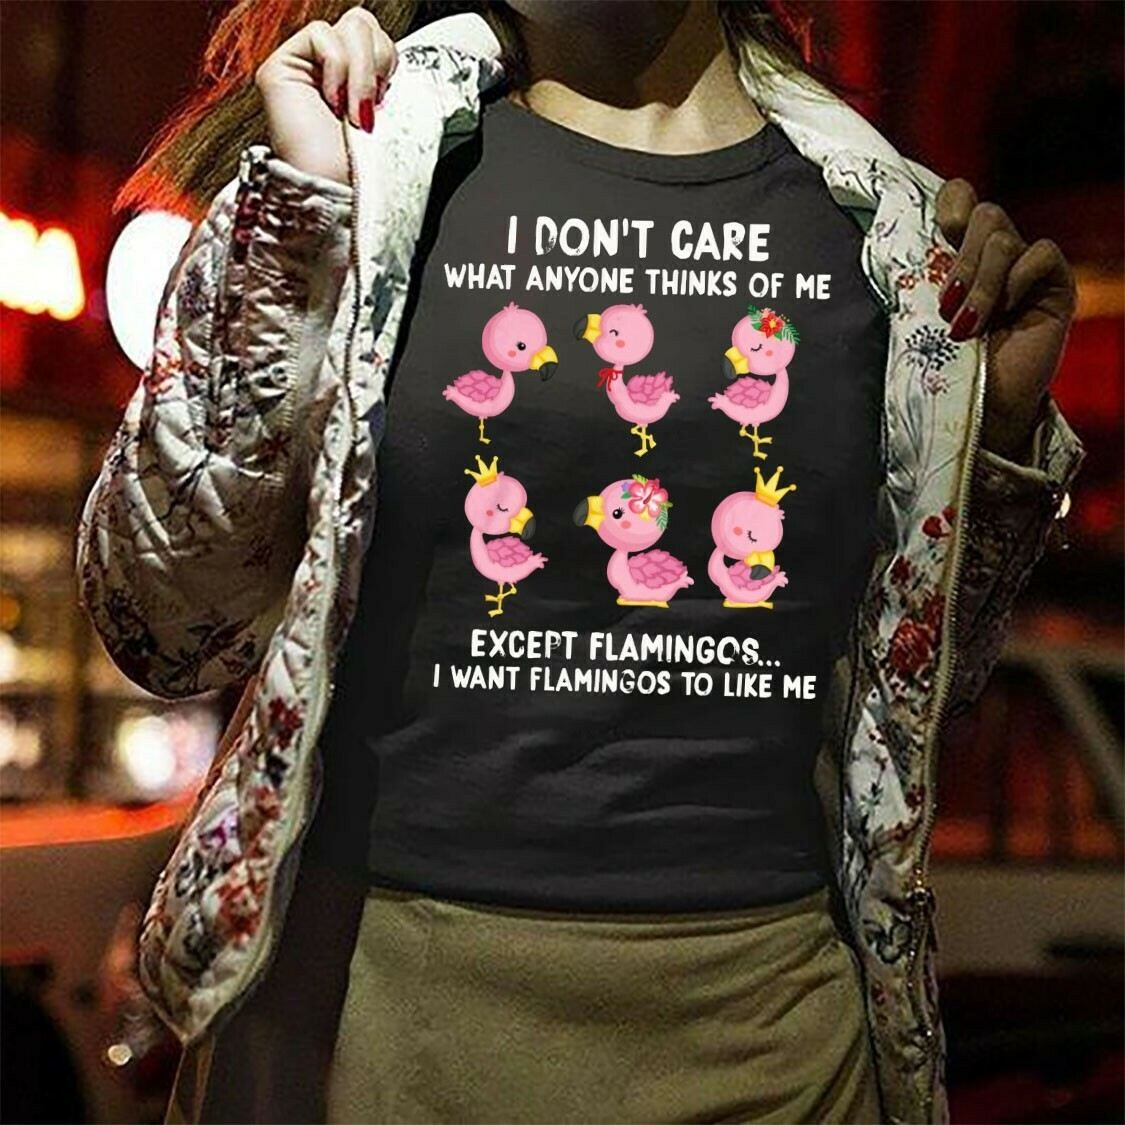 I Don't Care What Anyone Thinks Of Me Except Flamingos gift for lovers Pink Flamingo life, Girls Flamingo Shirt,Cute Flamingo Long Sleeve Sweatshirt Hoodie Jolly Family Gifts